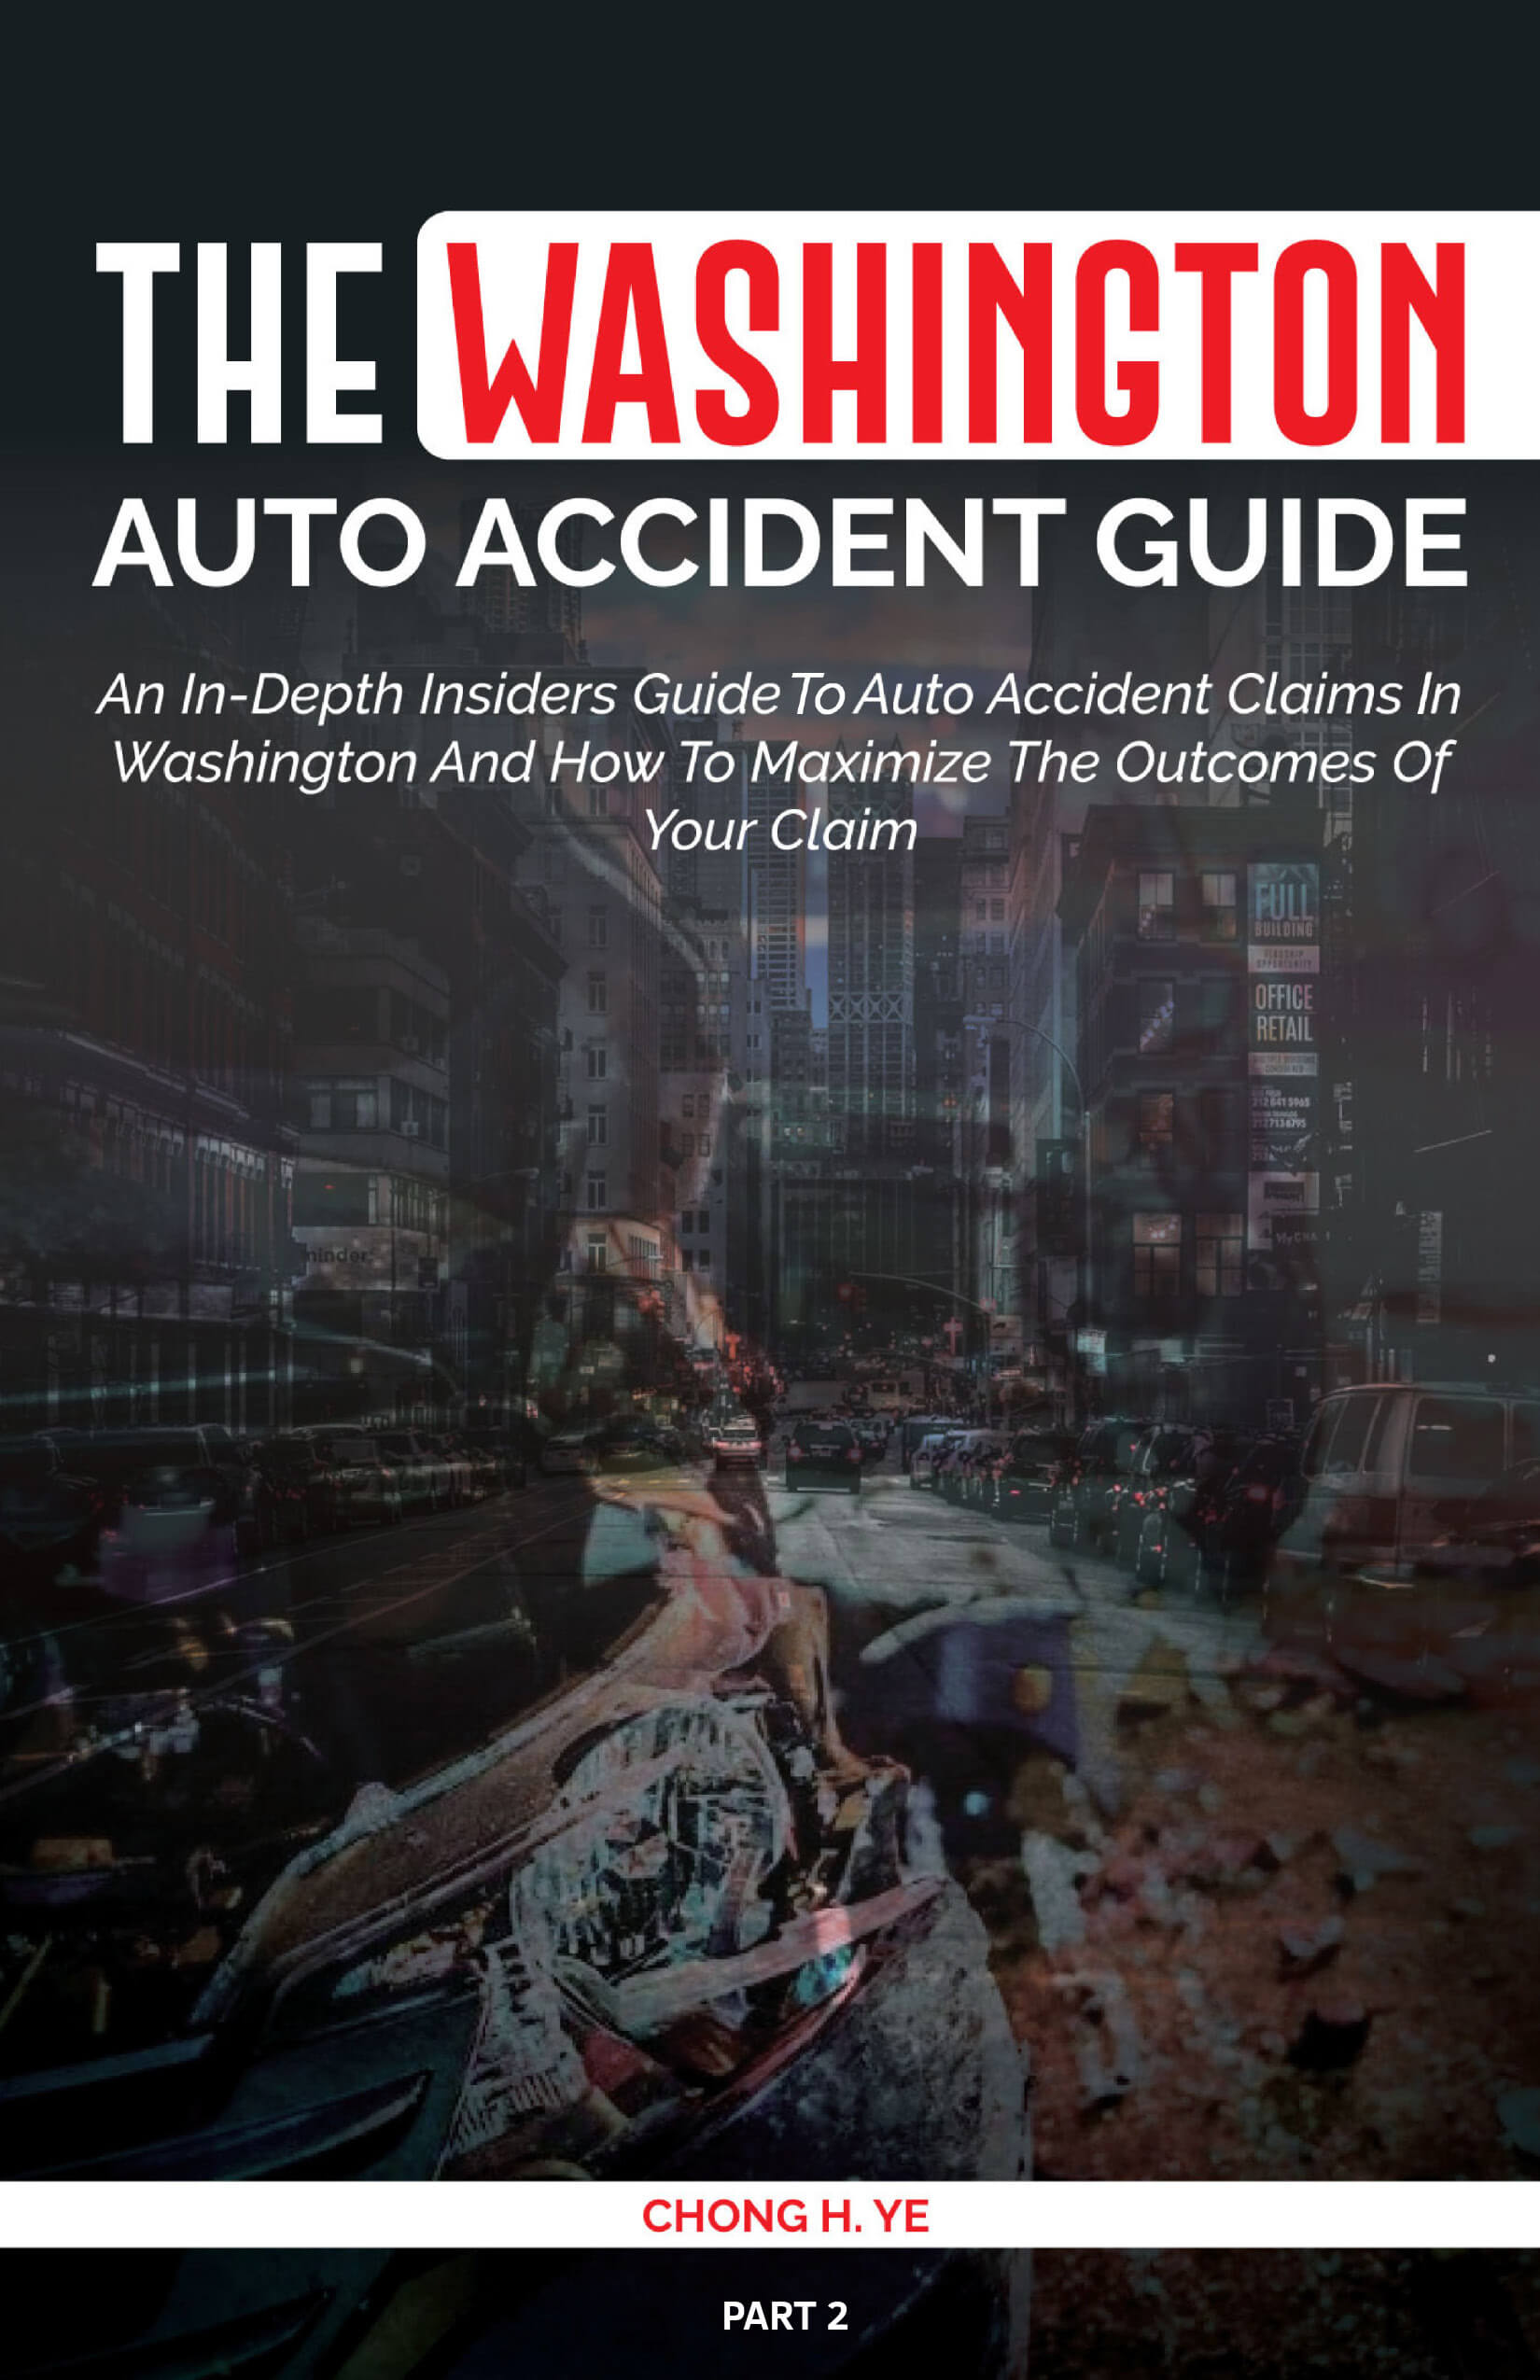 book cover with a city street and car parts; title The Washington Auto Accident Guide part 2